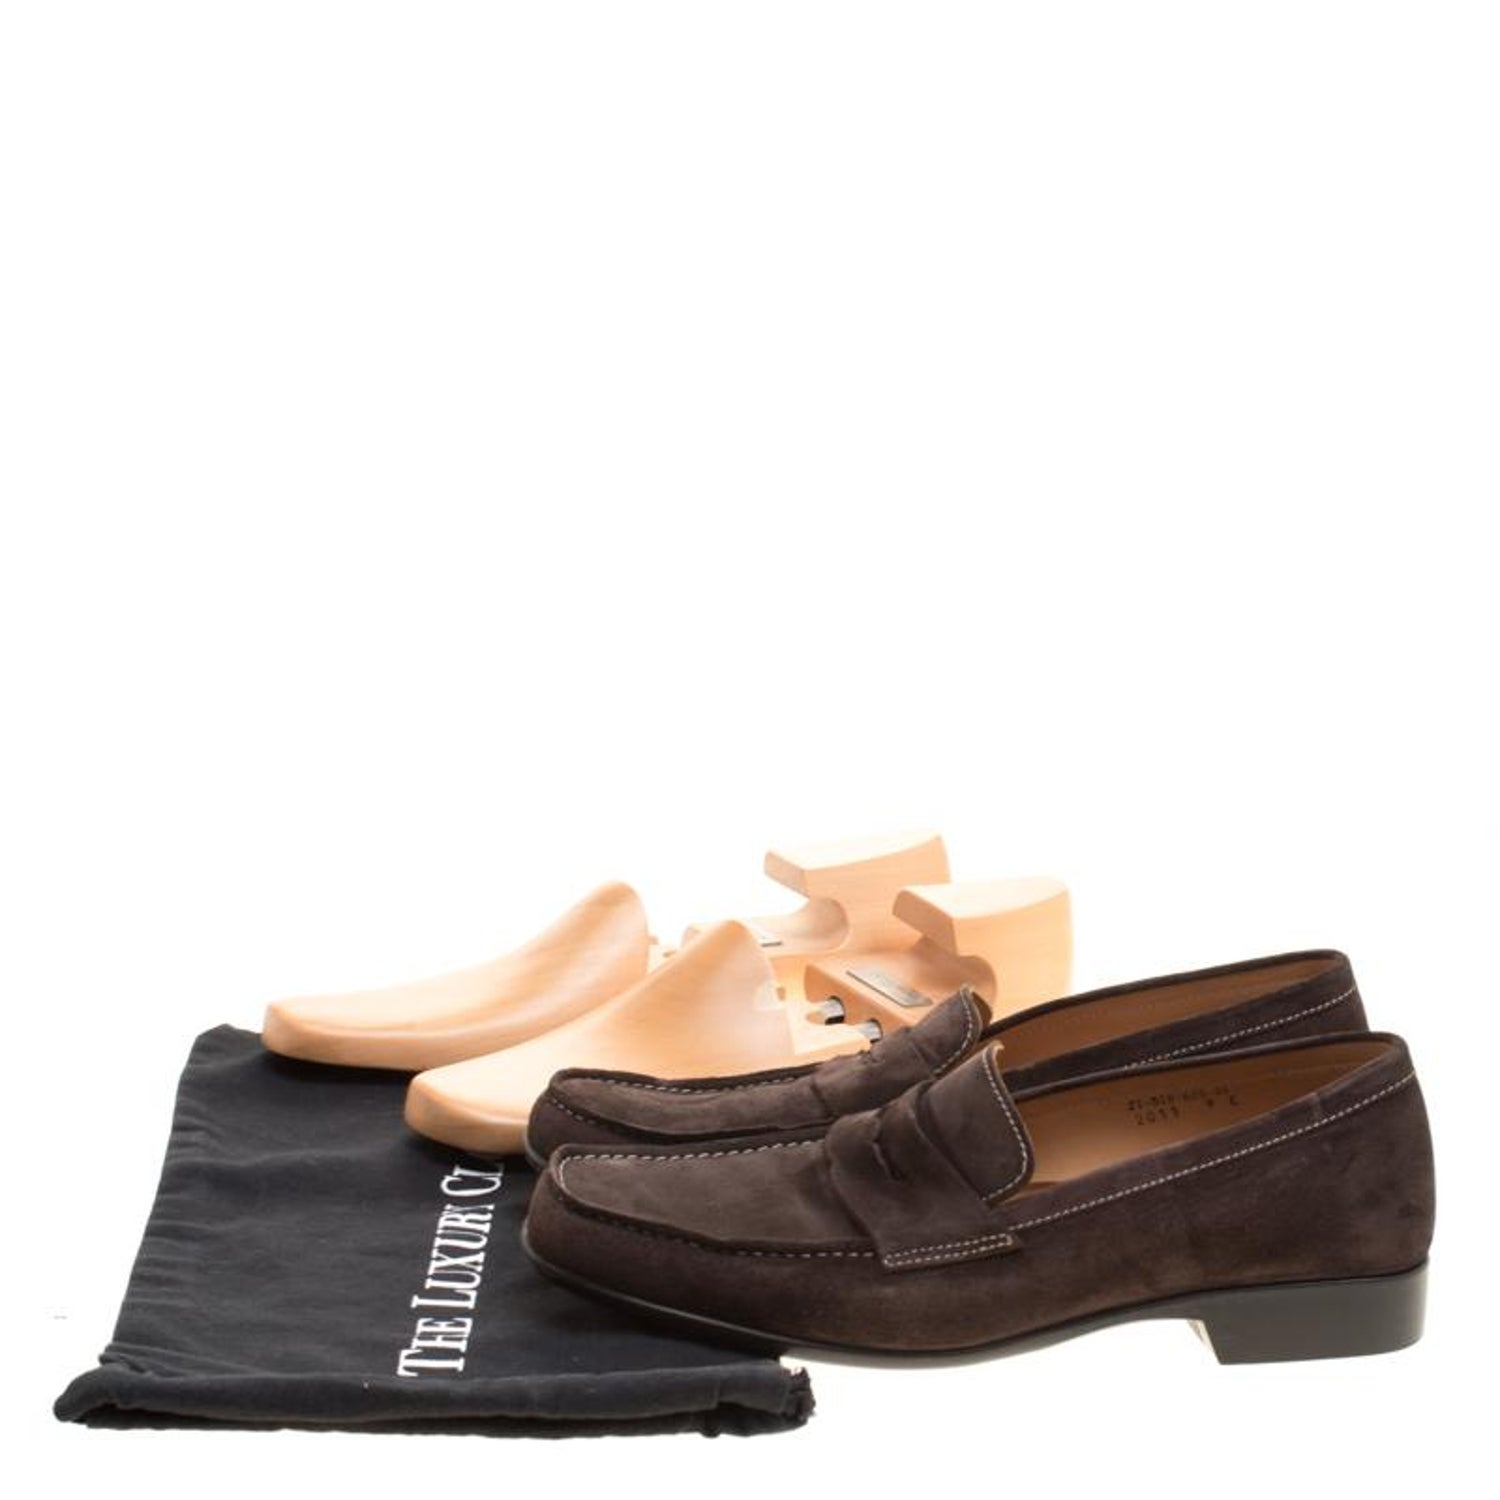 f20037ca6828b J.M.Weston Brown Suede Penny Loafers Size 43